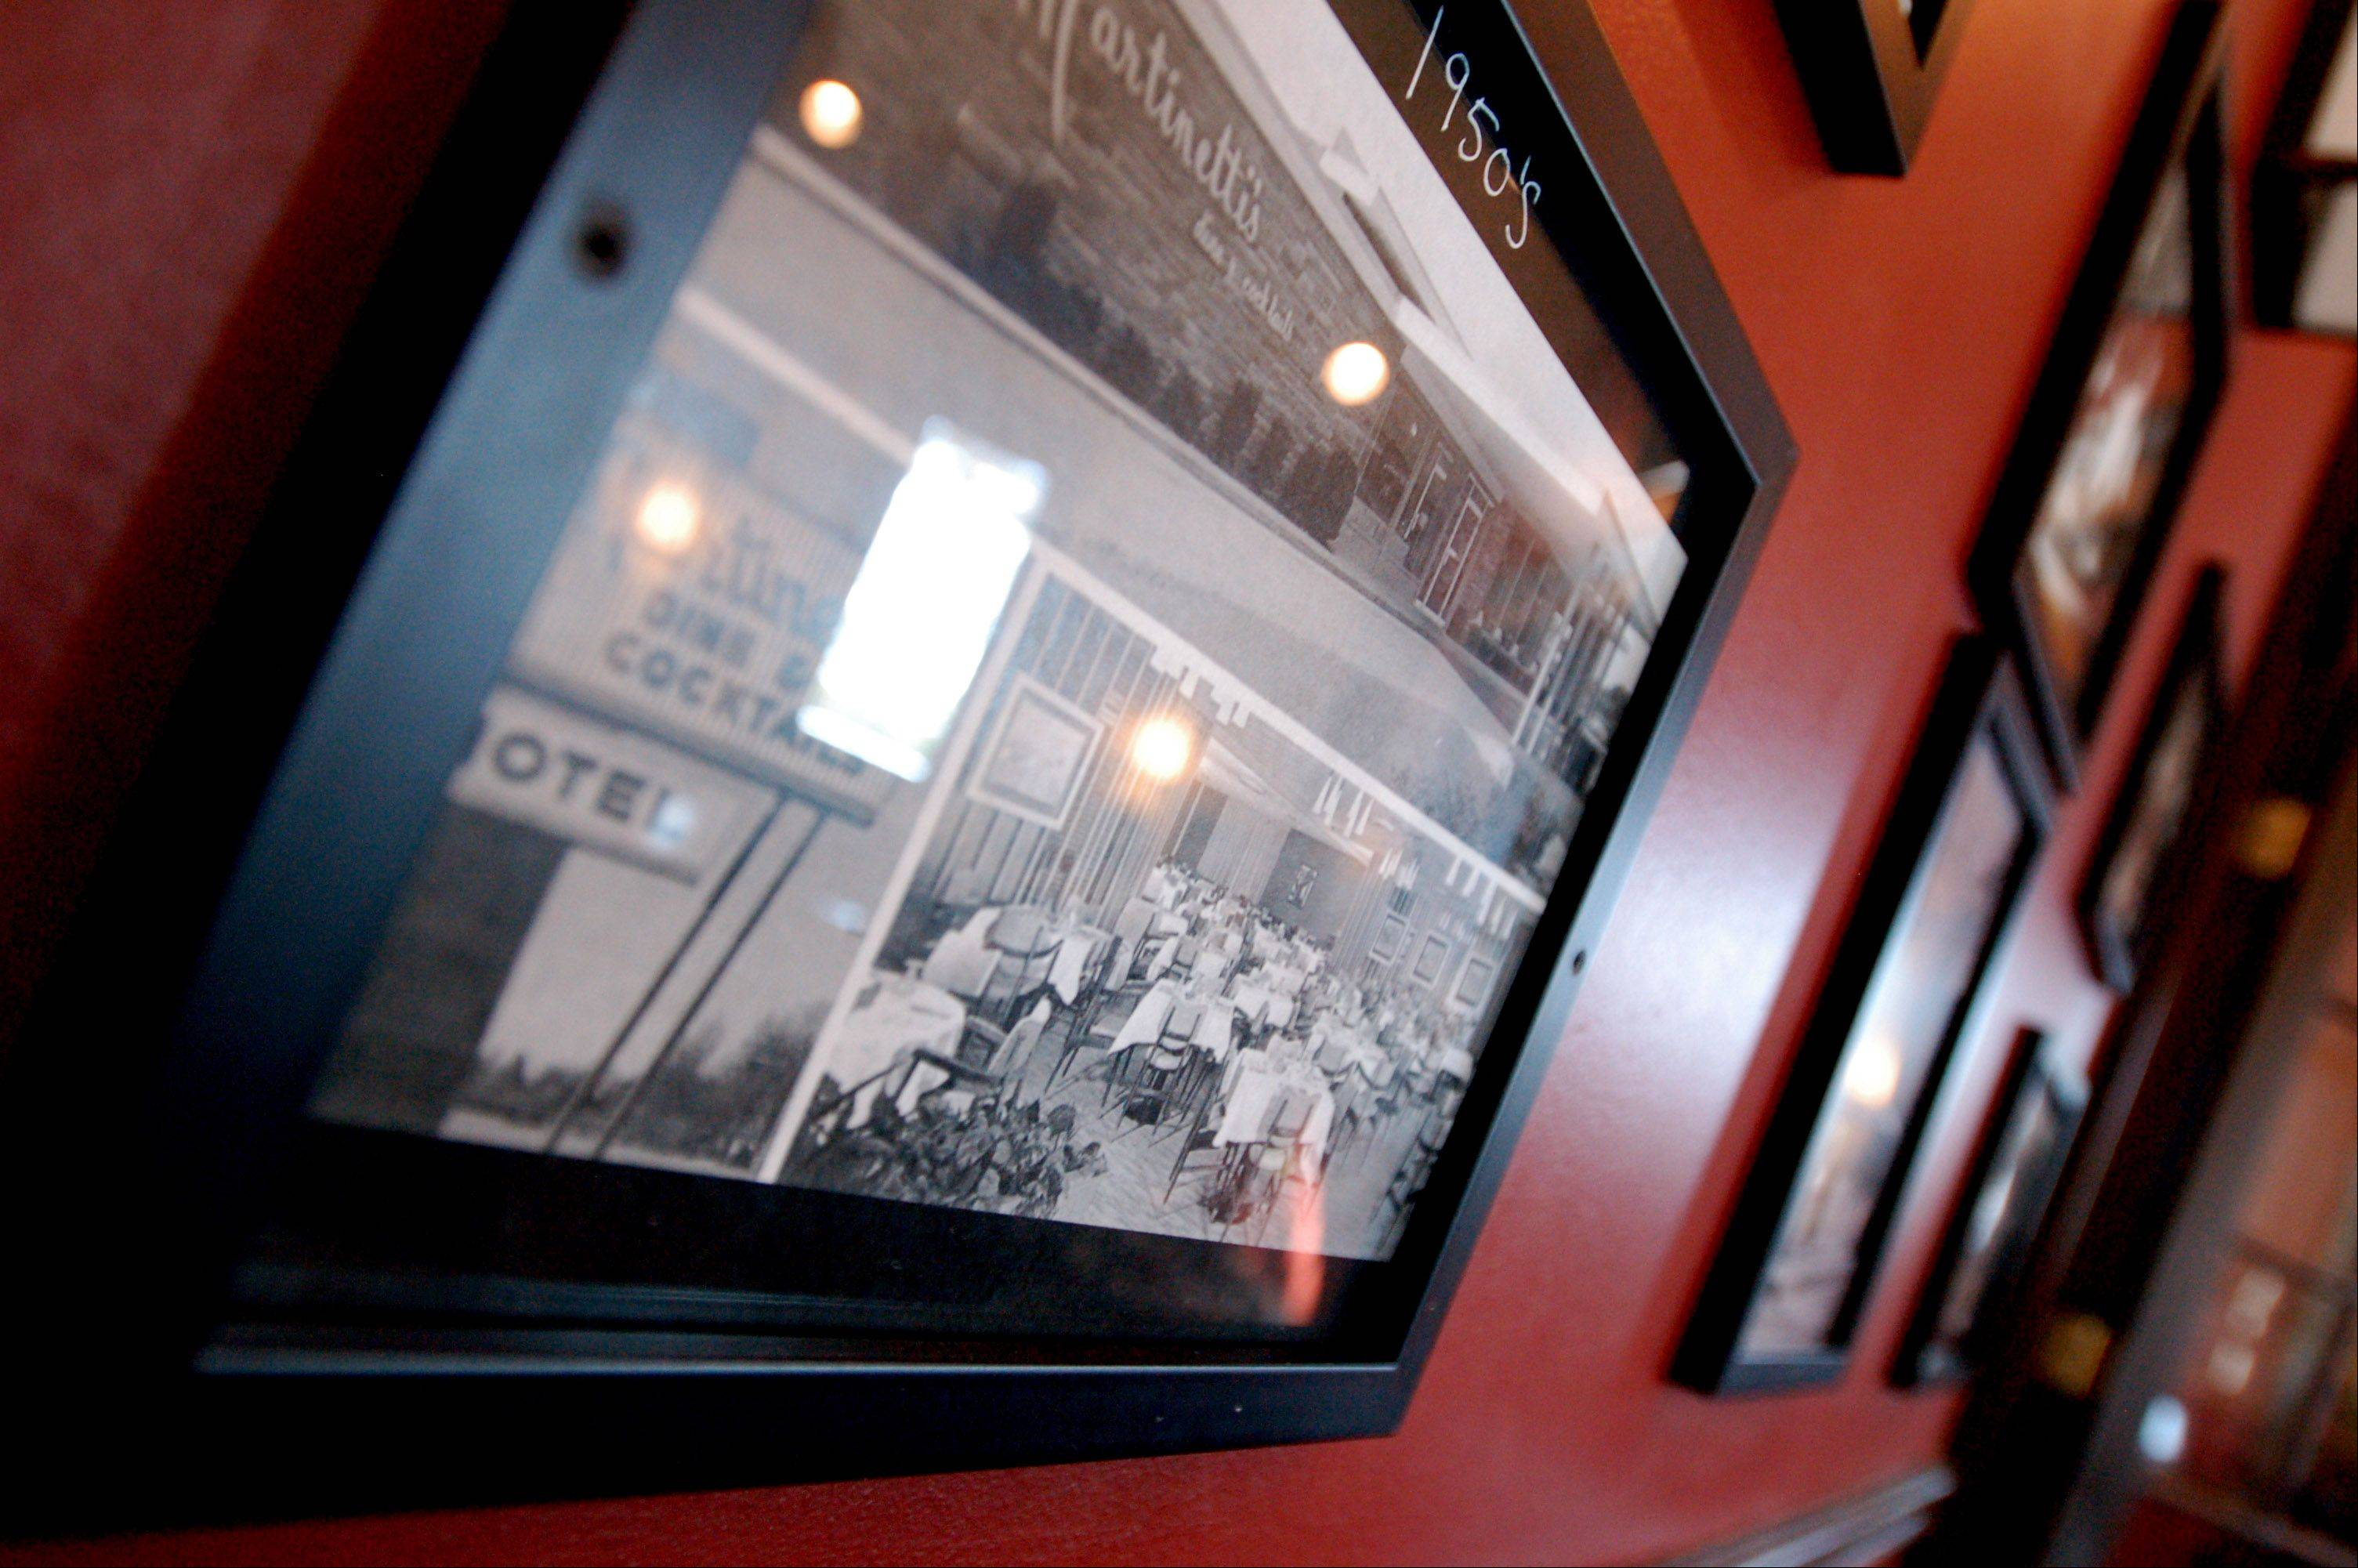 Historic photos decorate the walls at Hartley's.